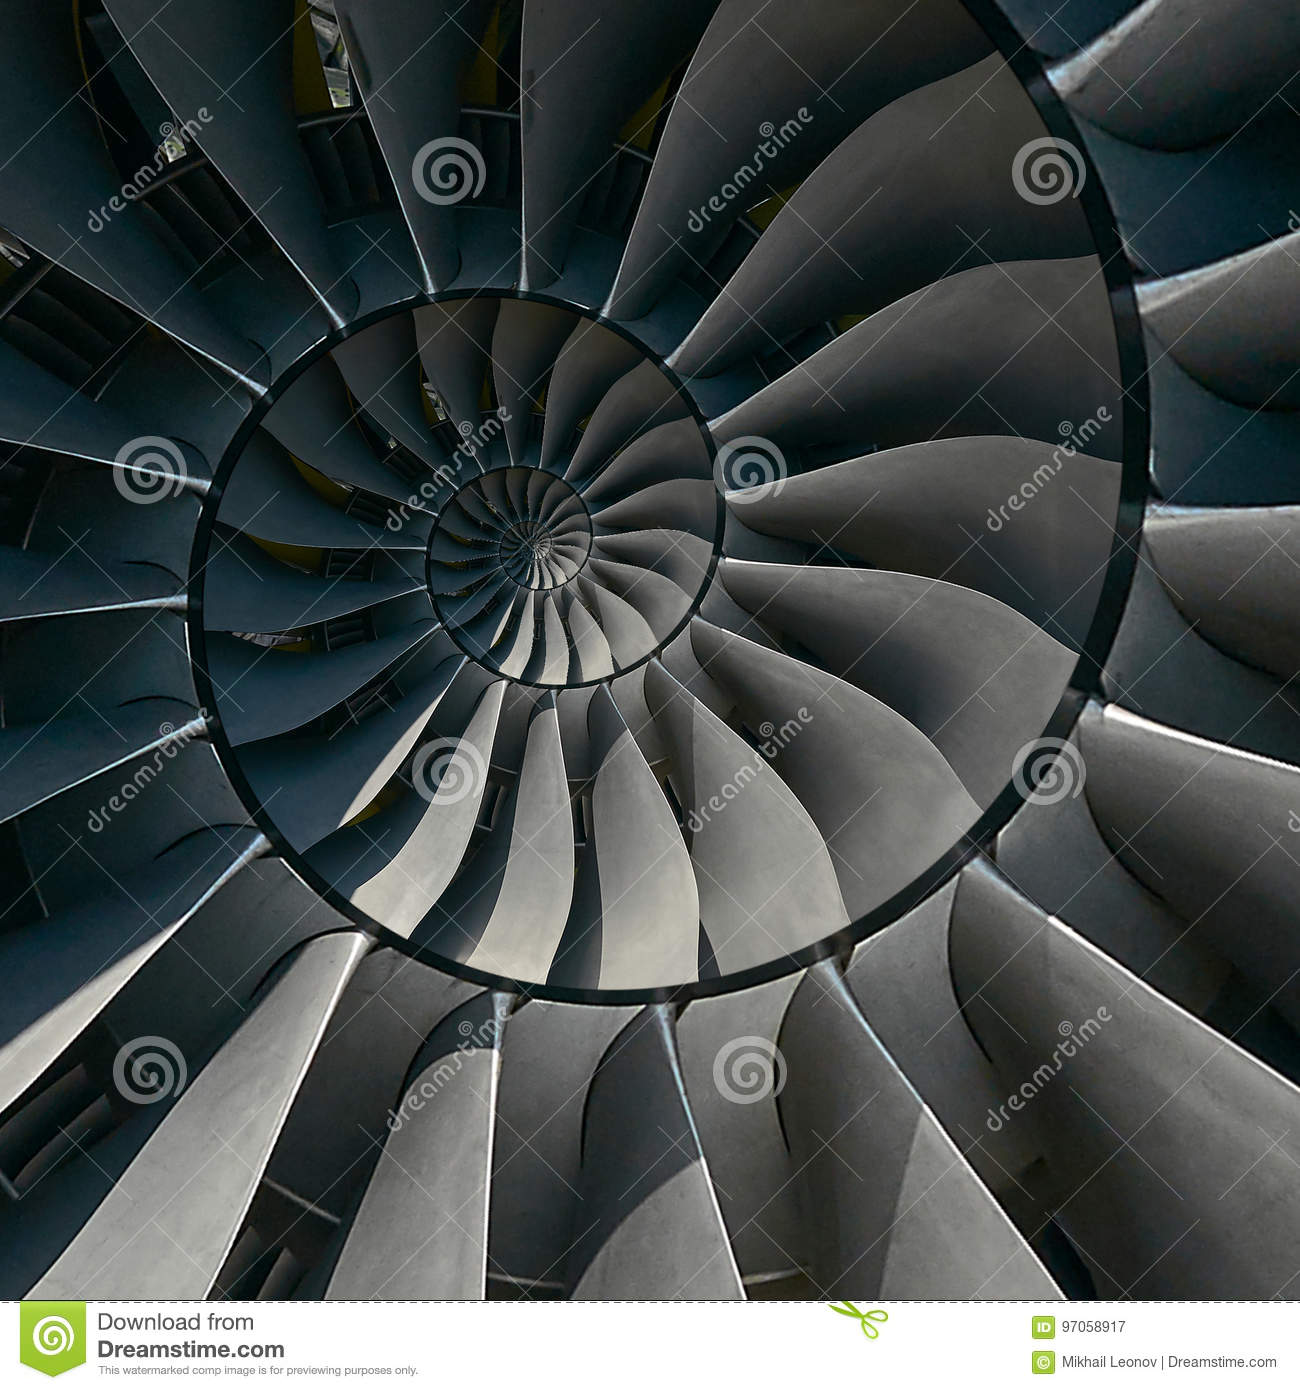 Turbine blades wings spiral effect abstract fractal pattern background. Spiral industrial production metallic turbine background.